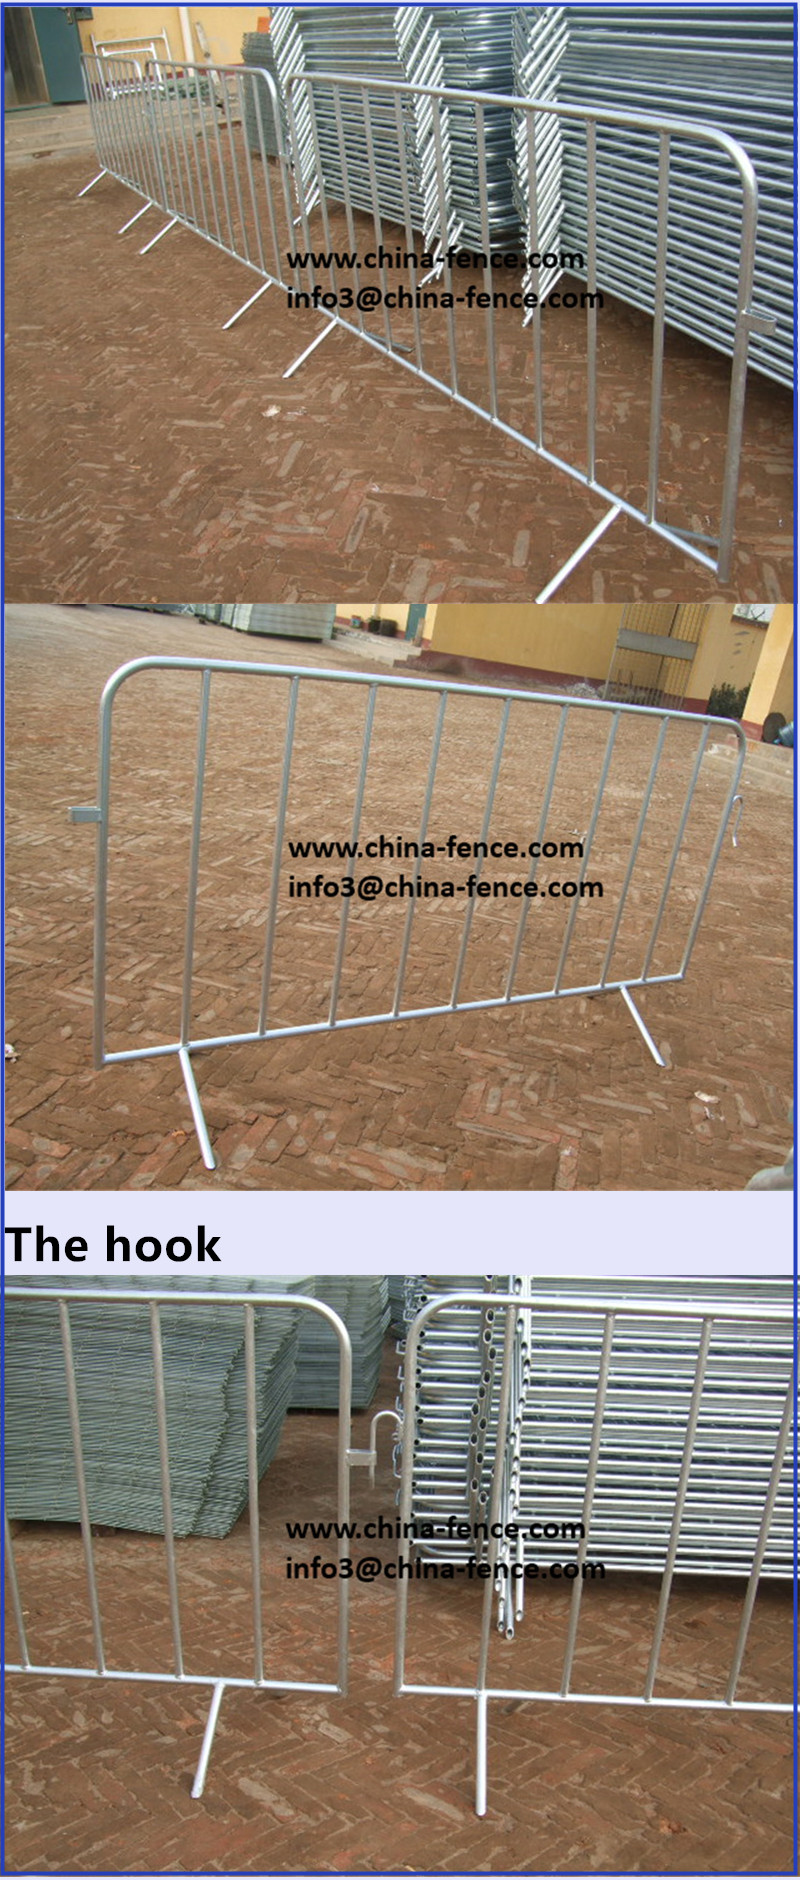 Used steel Crowd Control Barriers for sale China